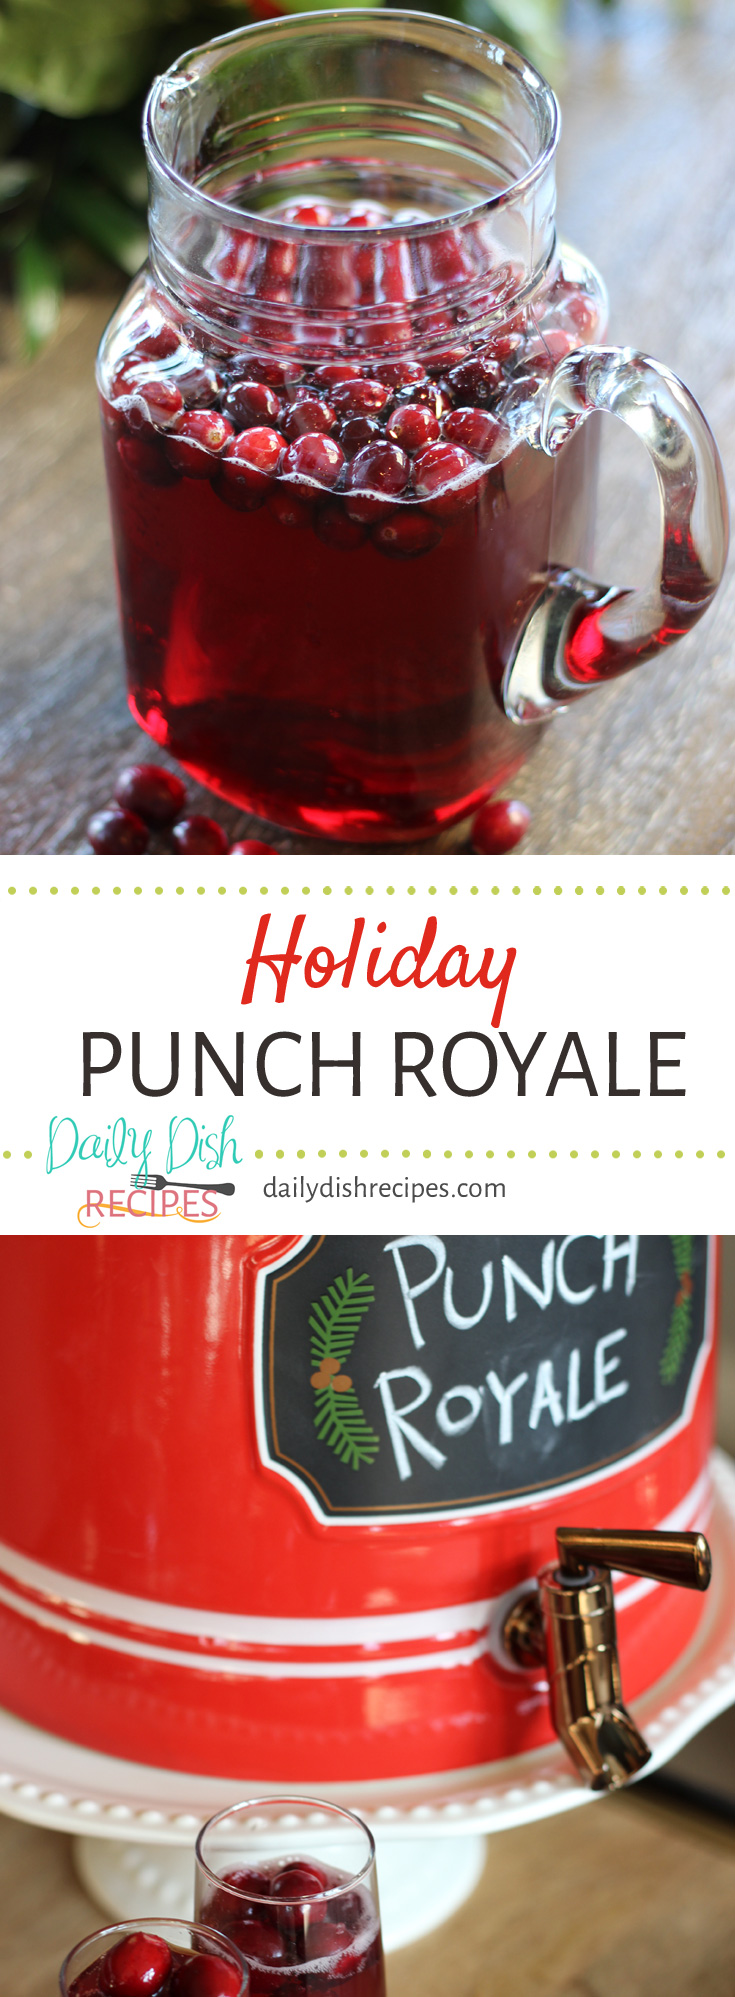 Holiday Punch Royale is a festive punch perfect for any winter occasion. A little sweet, a little tart and served with fresh cranberries and a little bubbly champagne and your guests will be coming back for more!